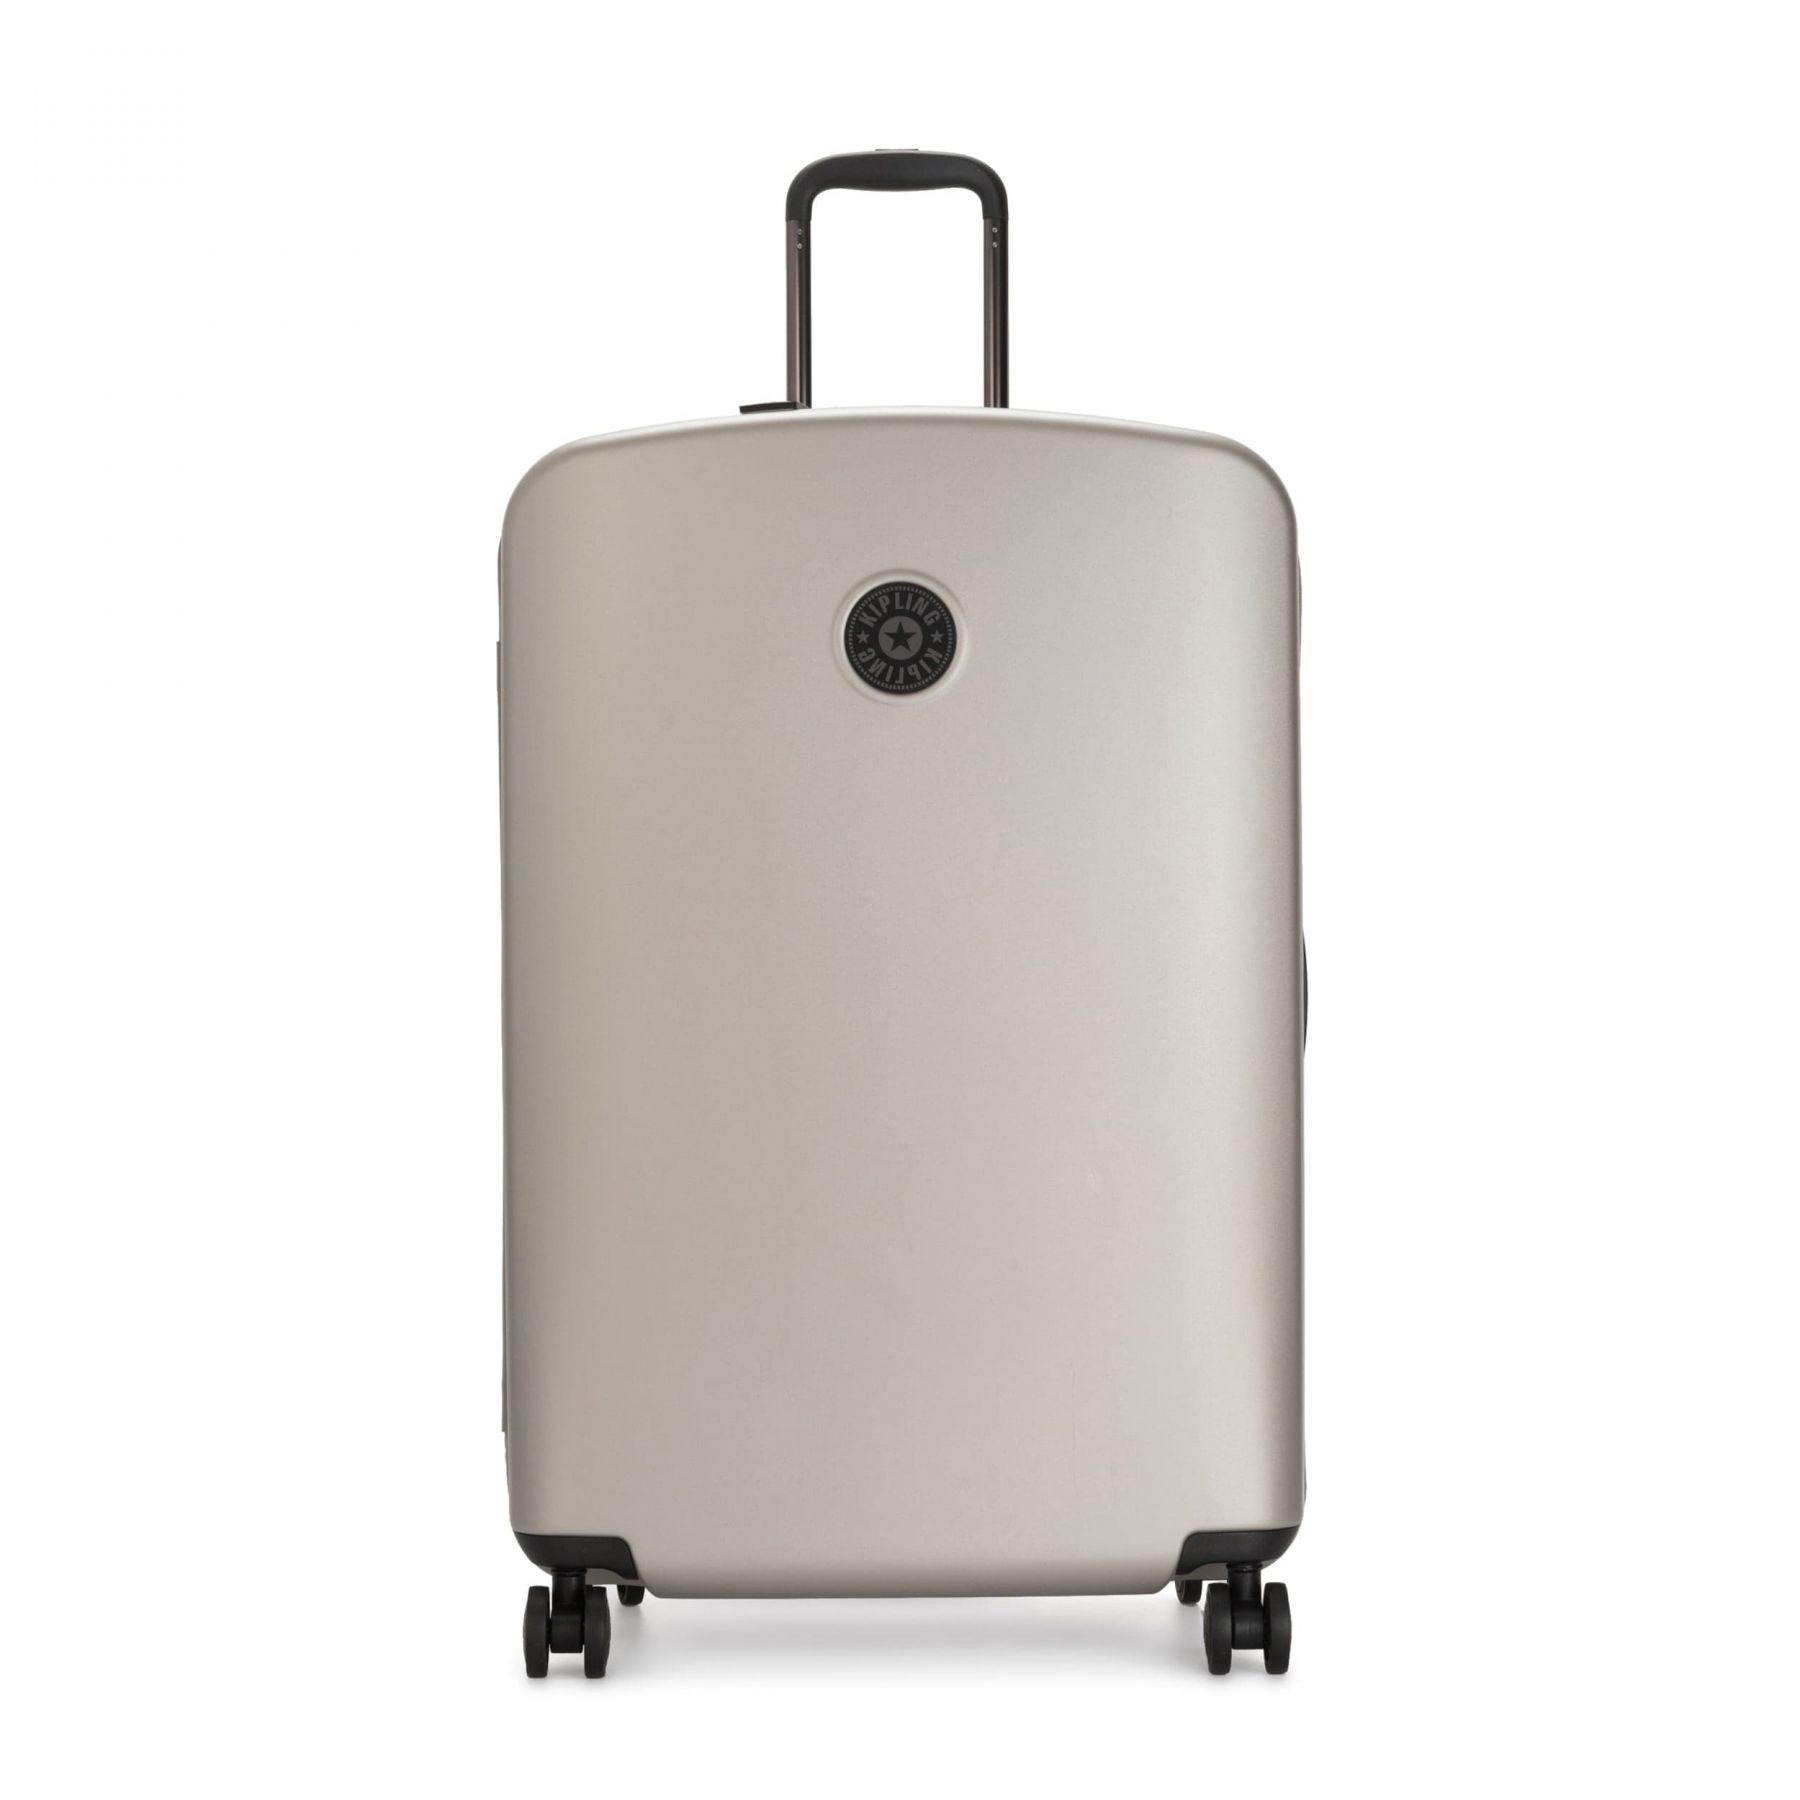 CURIOSITY L Latest Luggage by Kipling - Front view